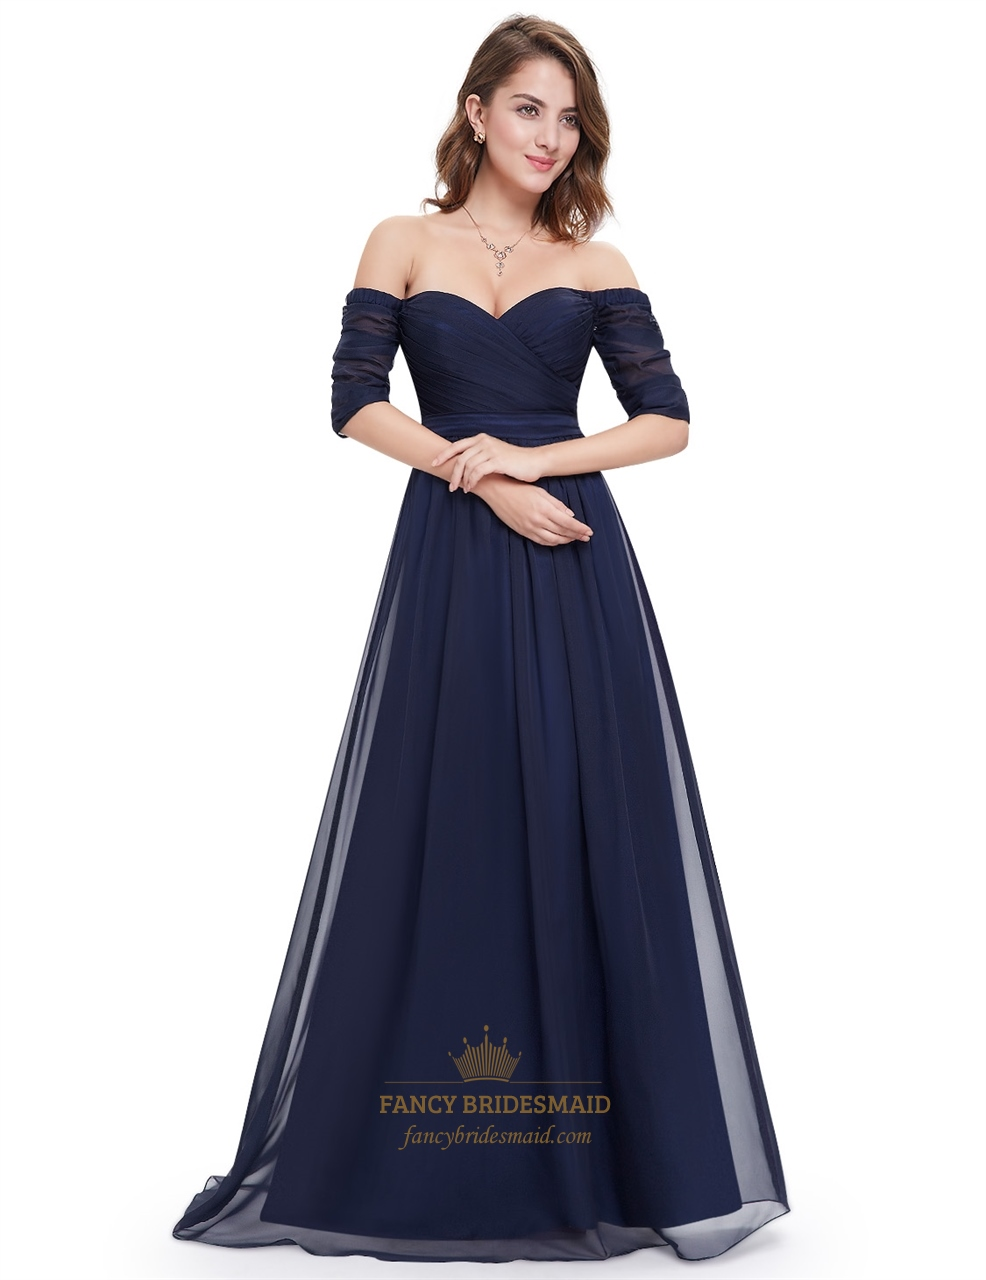 navy blue off the shoulder ruched evening gowns long with sleeves fancy bridesmaid dresses. Black Bedroom Furniture Sets. Home Design Ideas